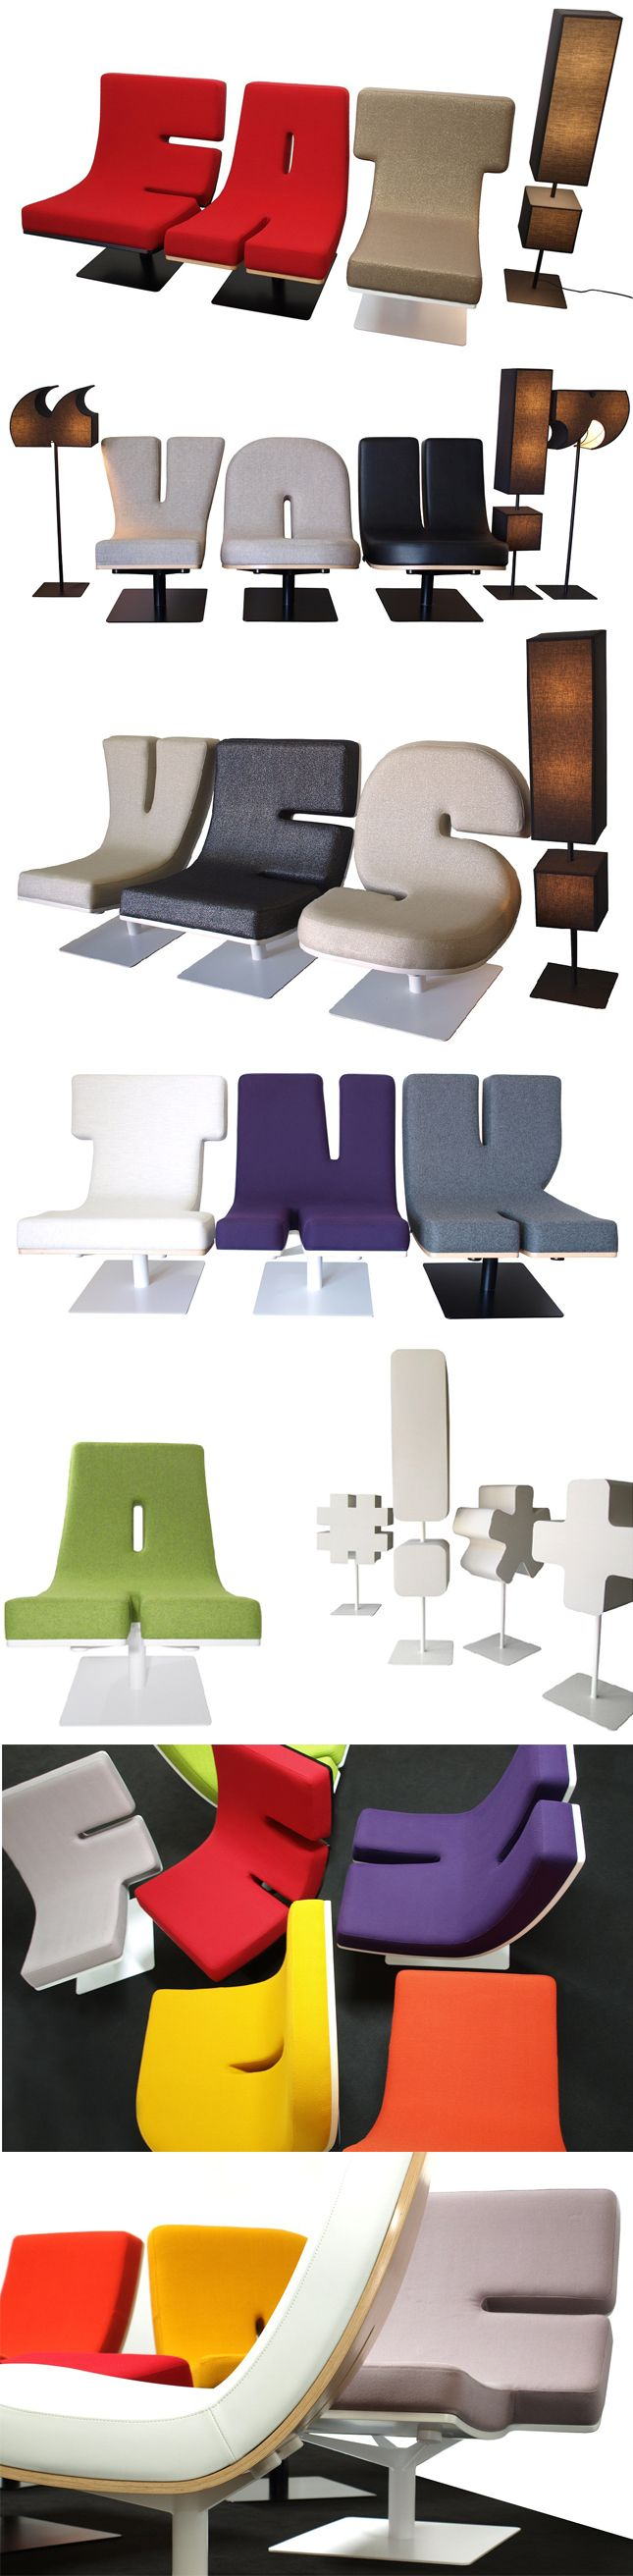 Cool office reception chairs - Typigraphic Furniture Fun Such A Great Way To Personalize Your Home Or Office